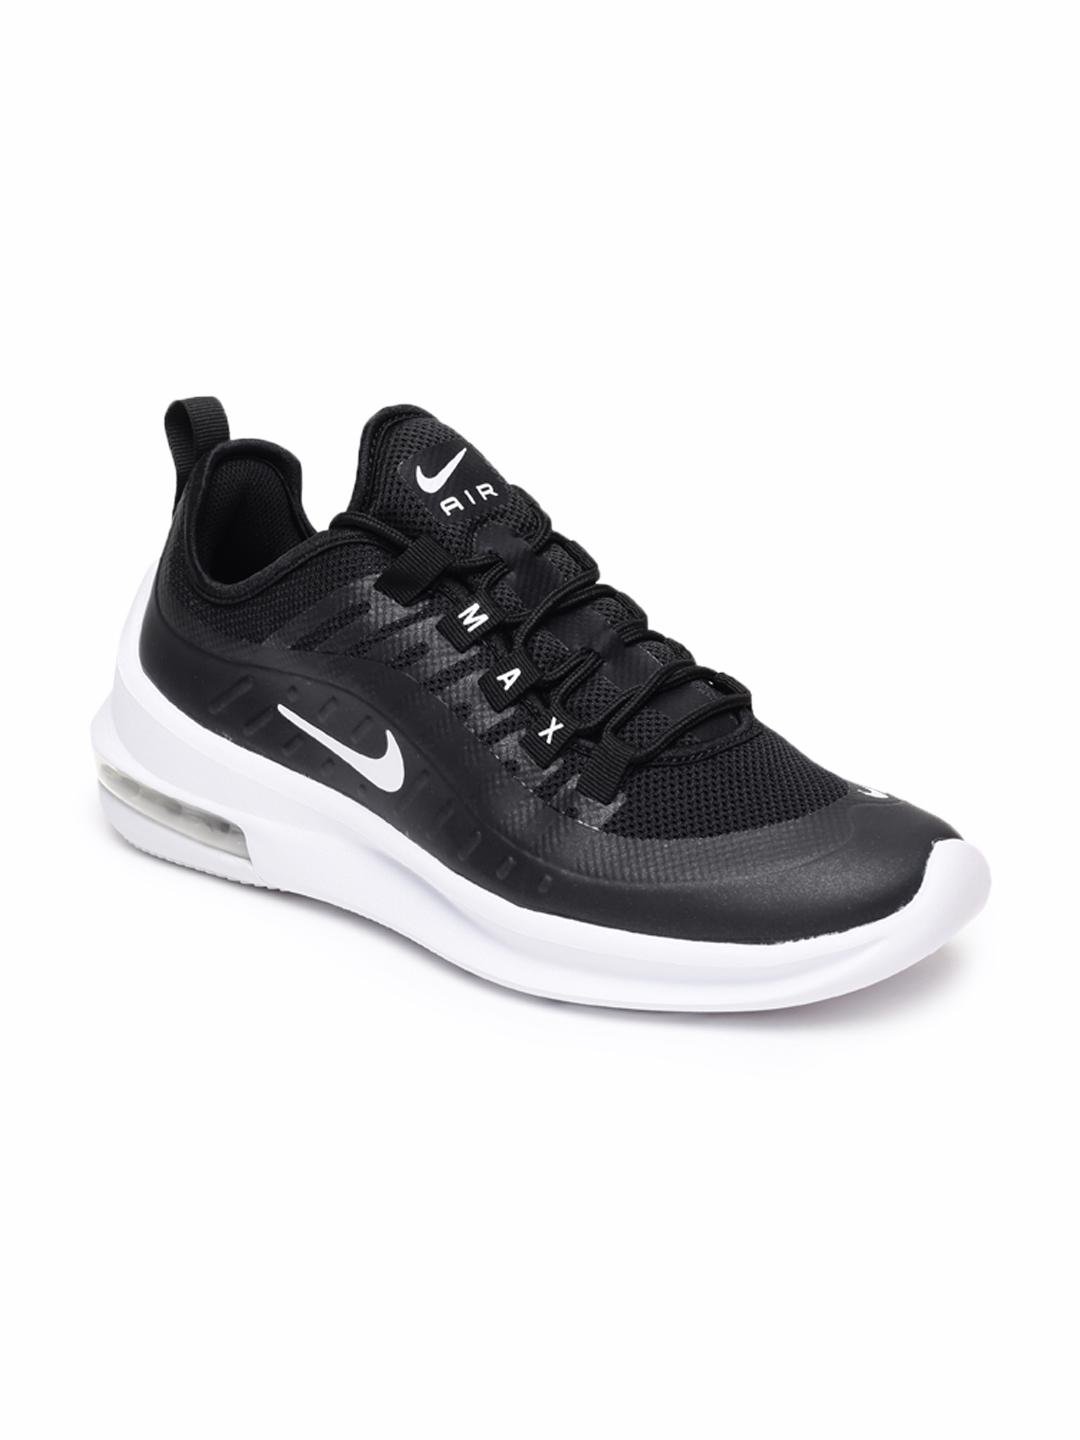 Buy Nike Men Black Air Max Axis Sneakers - Casual Shoes for Men ... 2f36e649d